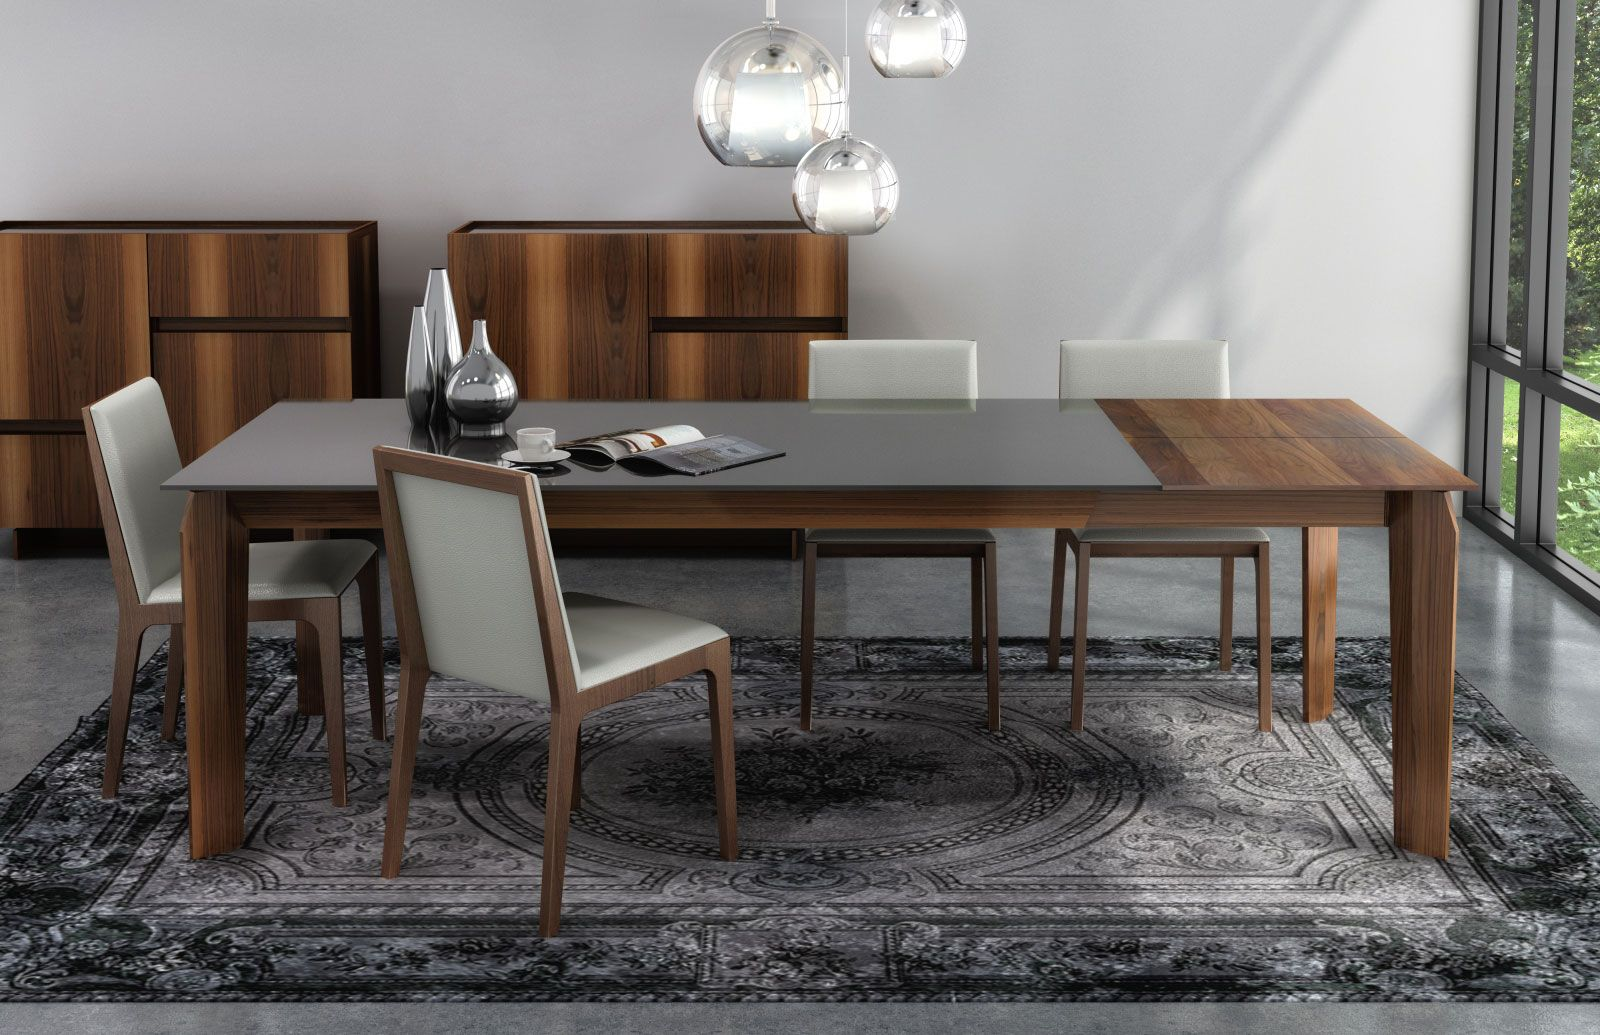 Up Dining Magnolia Collection Furniture Manufacturer